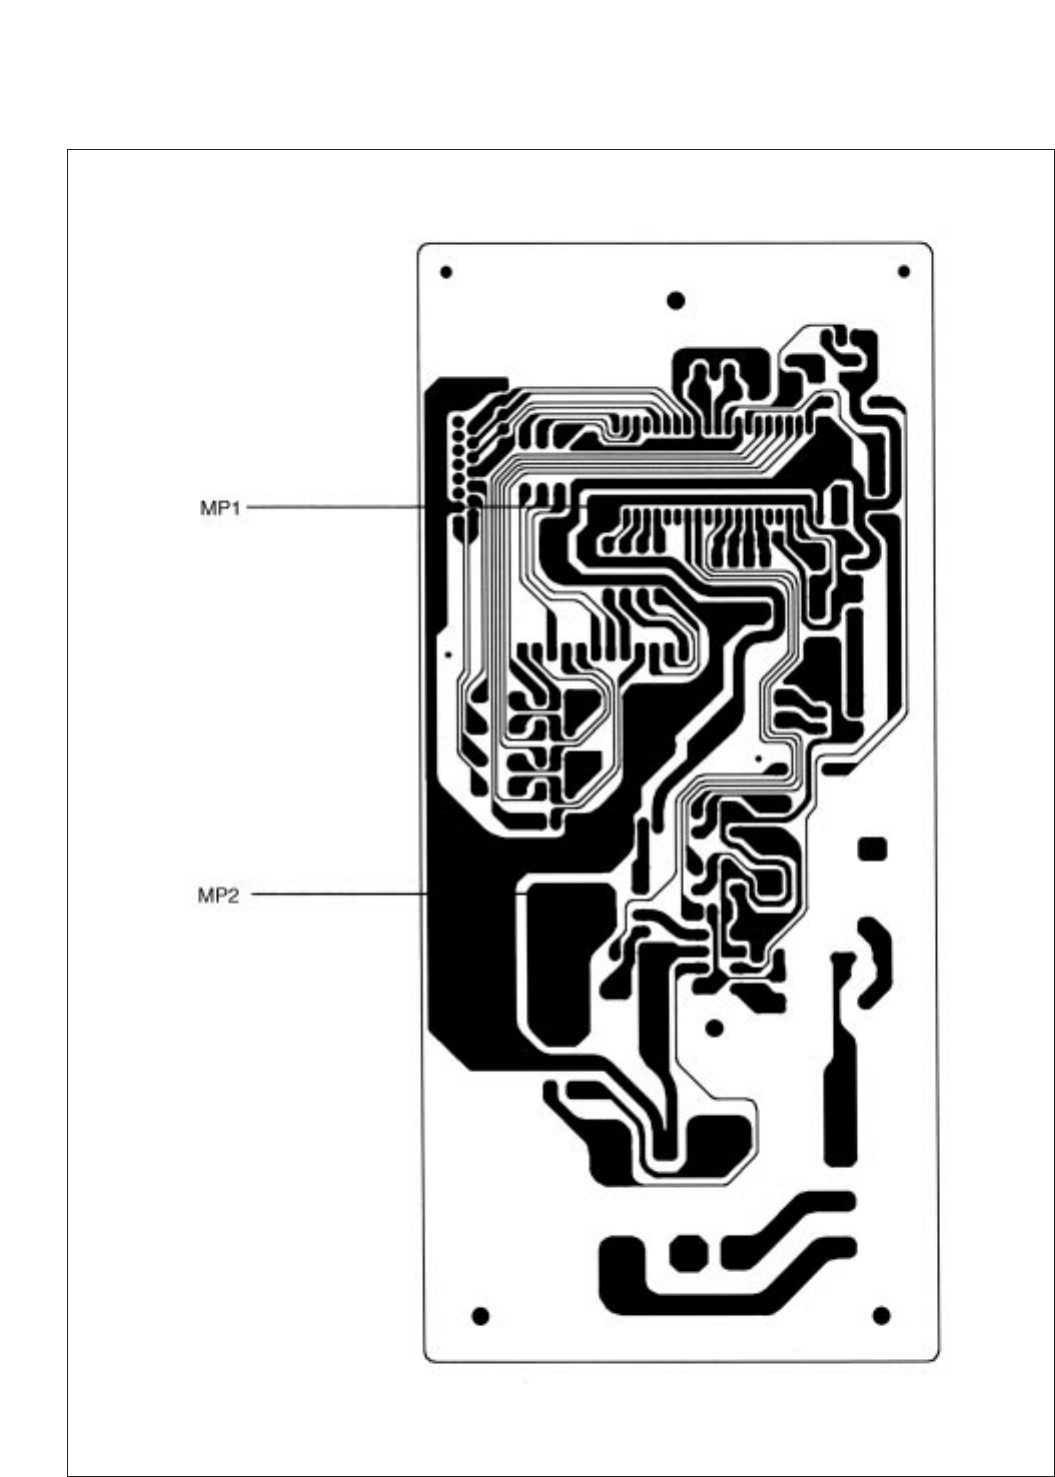 Page 79 of Daewoo Microwave Oven KOG-376T1S User Guide